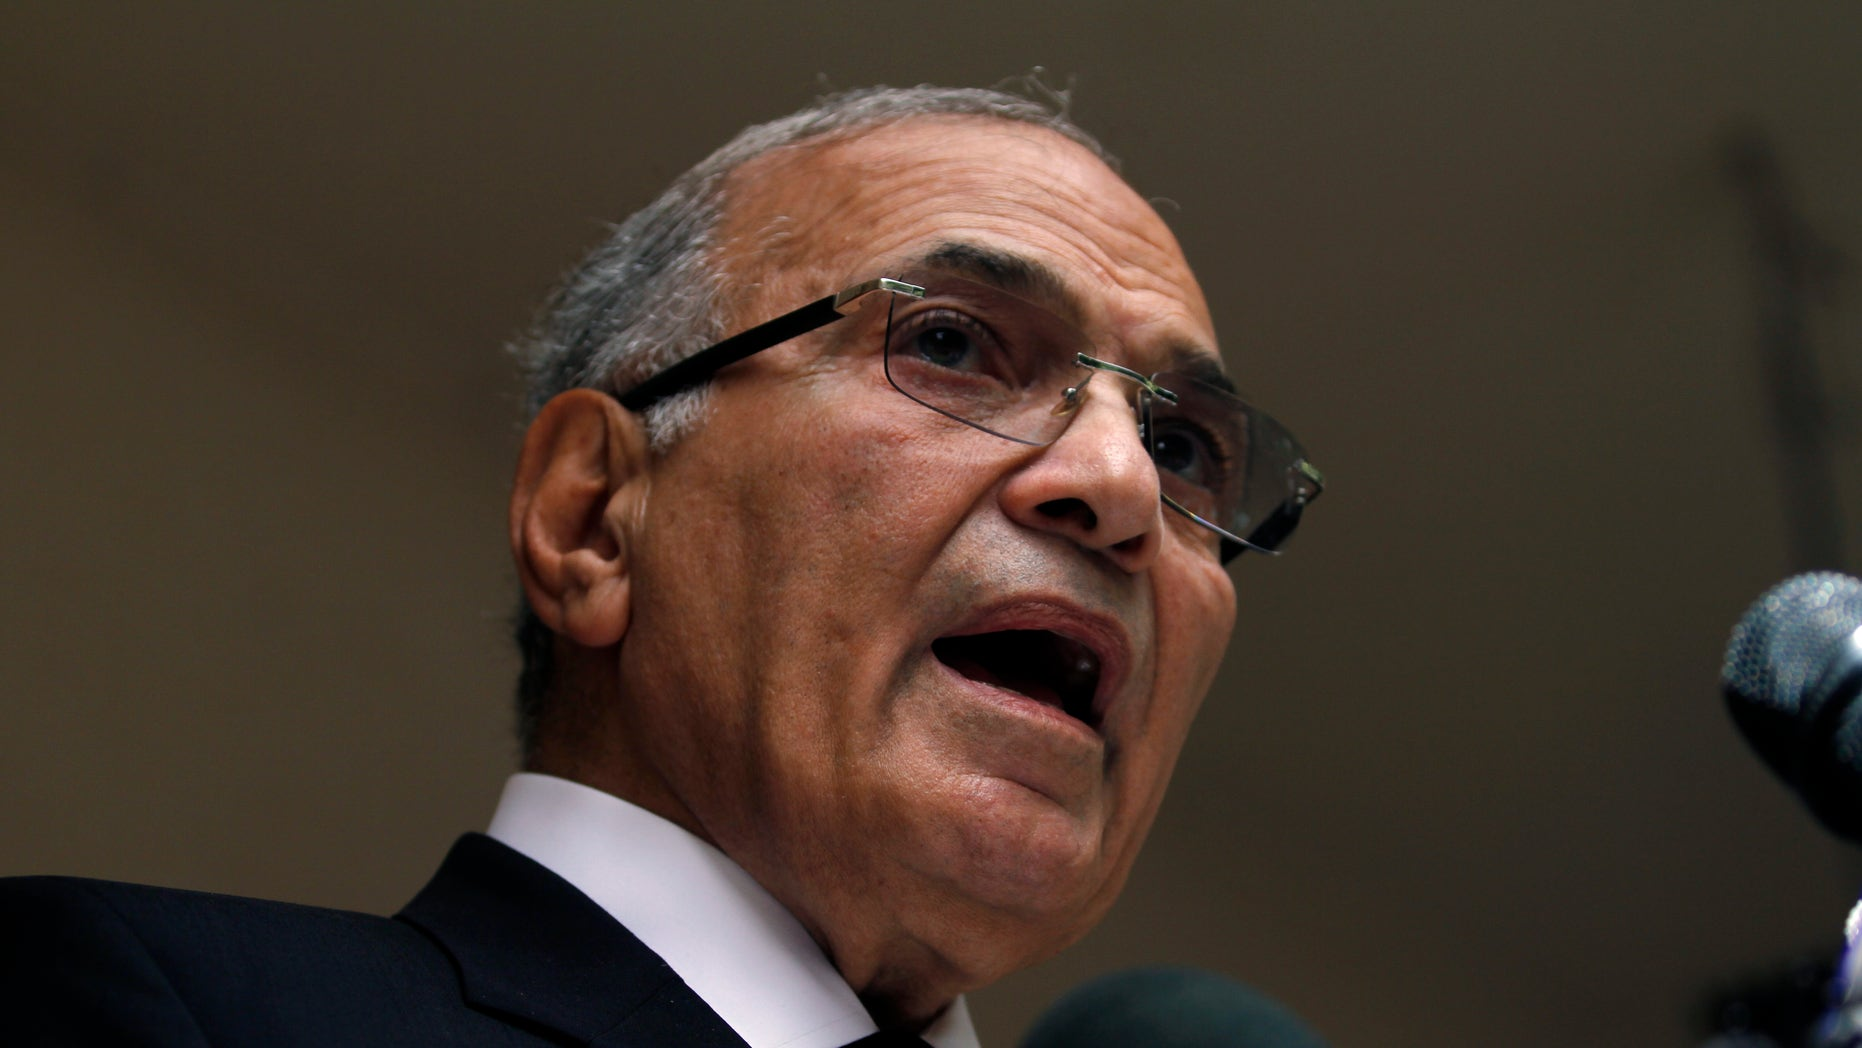 FILE - In this Saturday, May 26, 2012 file photo, Egyptian presidential candidate Ahmed Shafiq speaks to the media during a press conference at his office in Cairo, Egypt. Egyptian officials said Tuesday, Sept. 11, 2012 that Hosni Mubarak's last prime minister, Ahmed Shafiq, has been referred to trial on corruption charges in a case involving the ousted leader's sons. (AP Photo/Khalil Hamra, File)